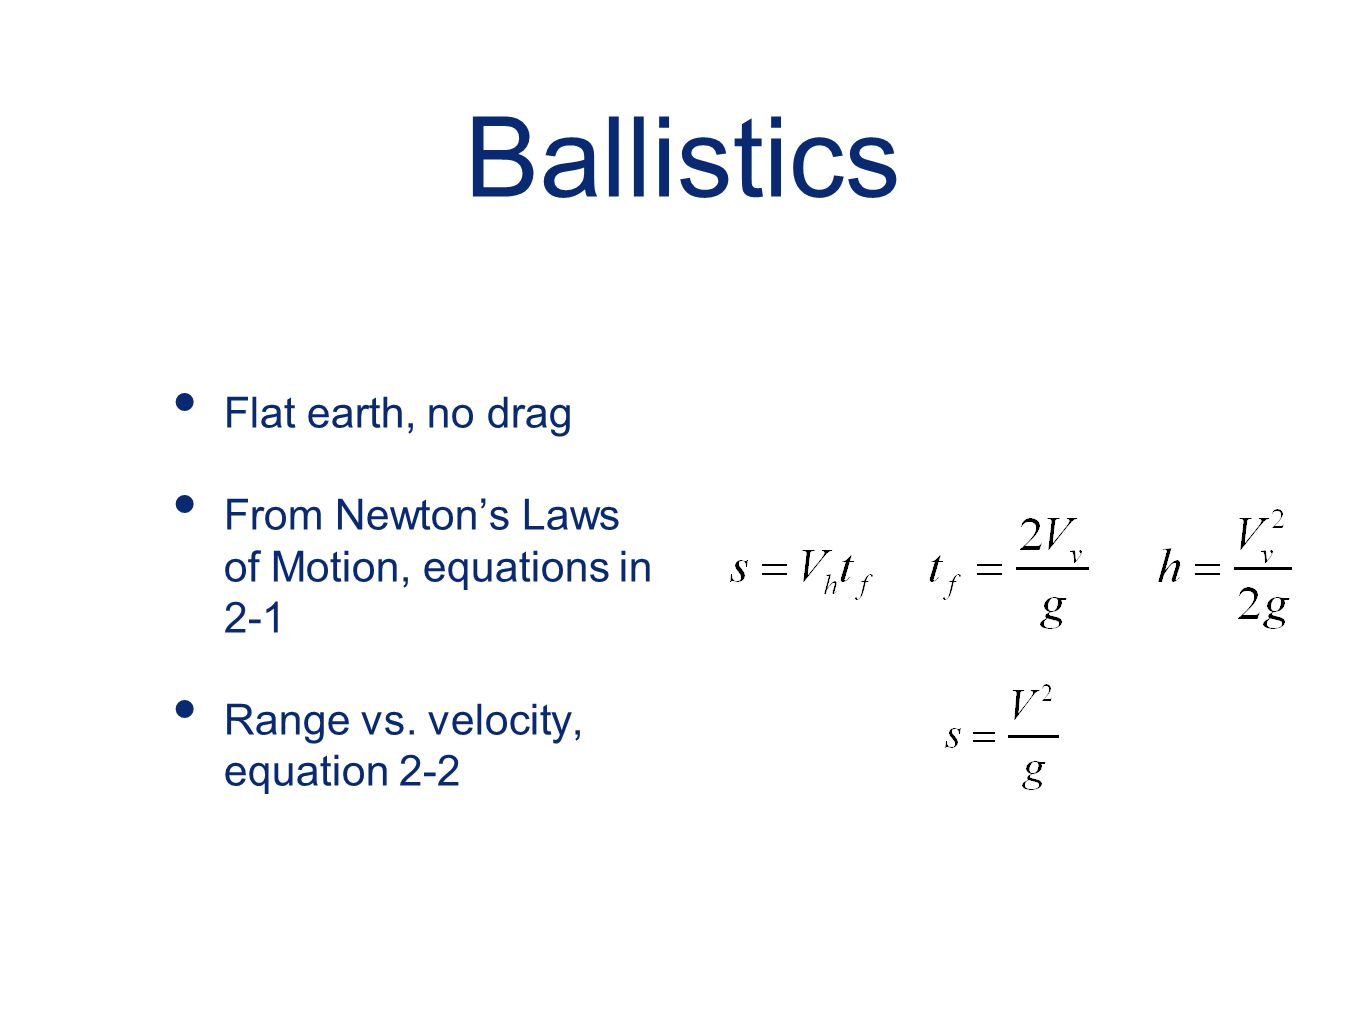 Ballistics Flat earth, no drag From Newton's Laws of Motion, equations in 2-1 Range vs. velocity, equation 2-2